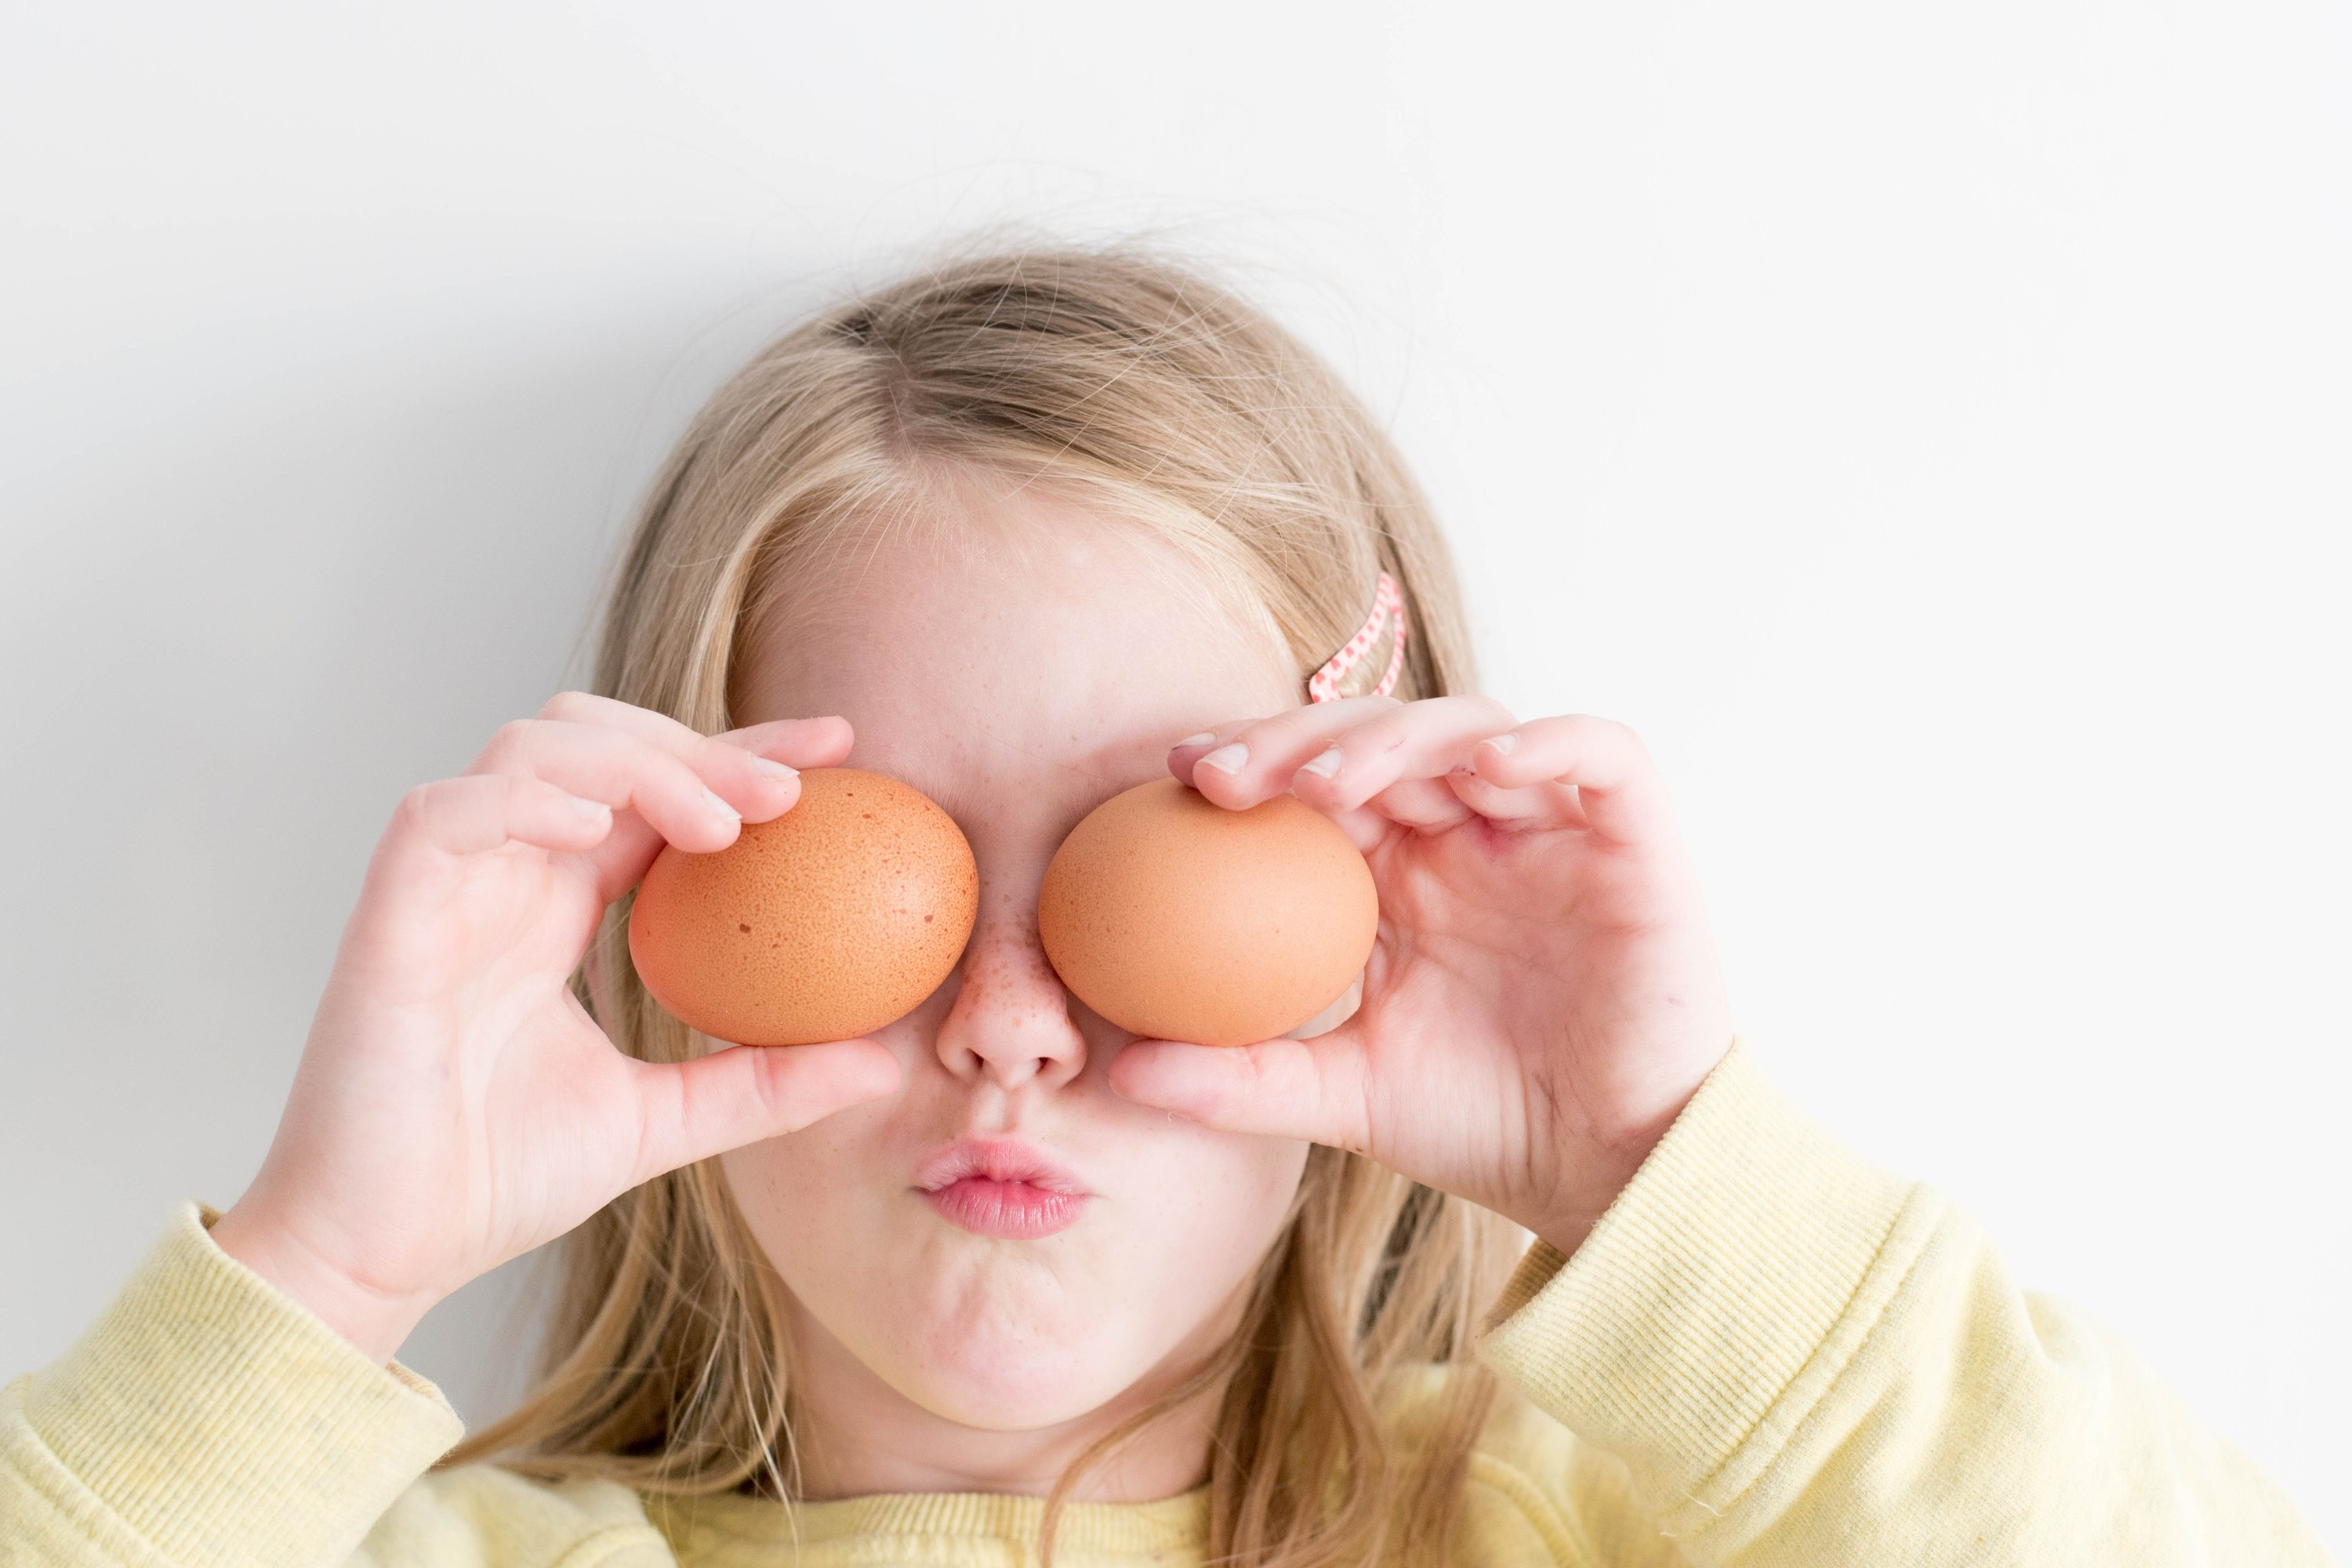 child with eggs